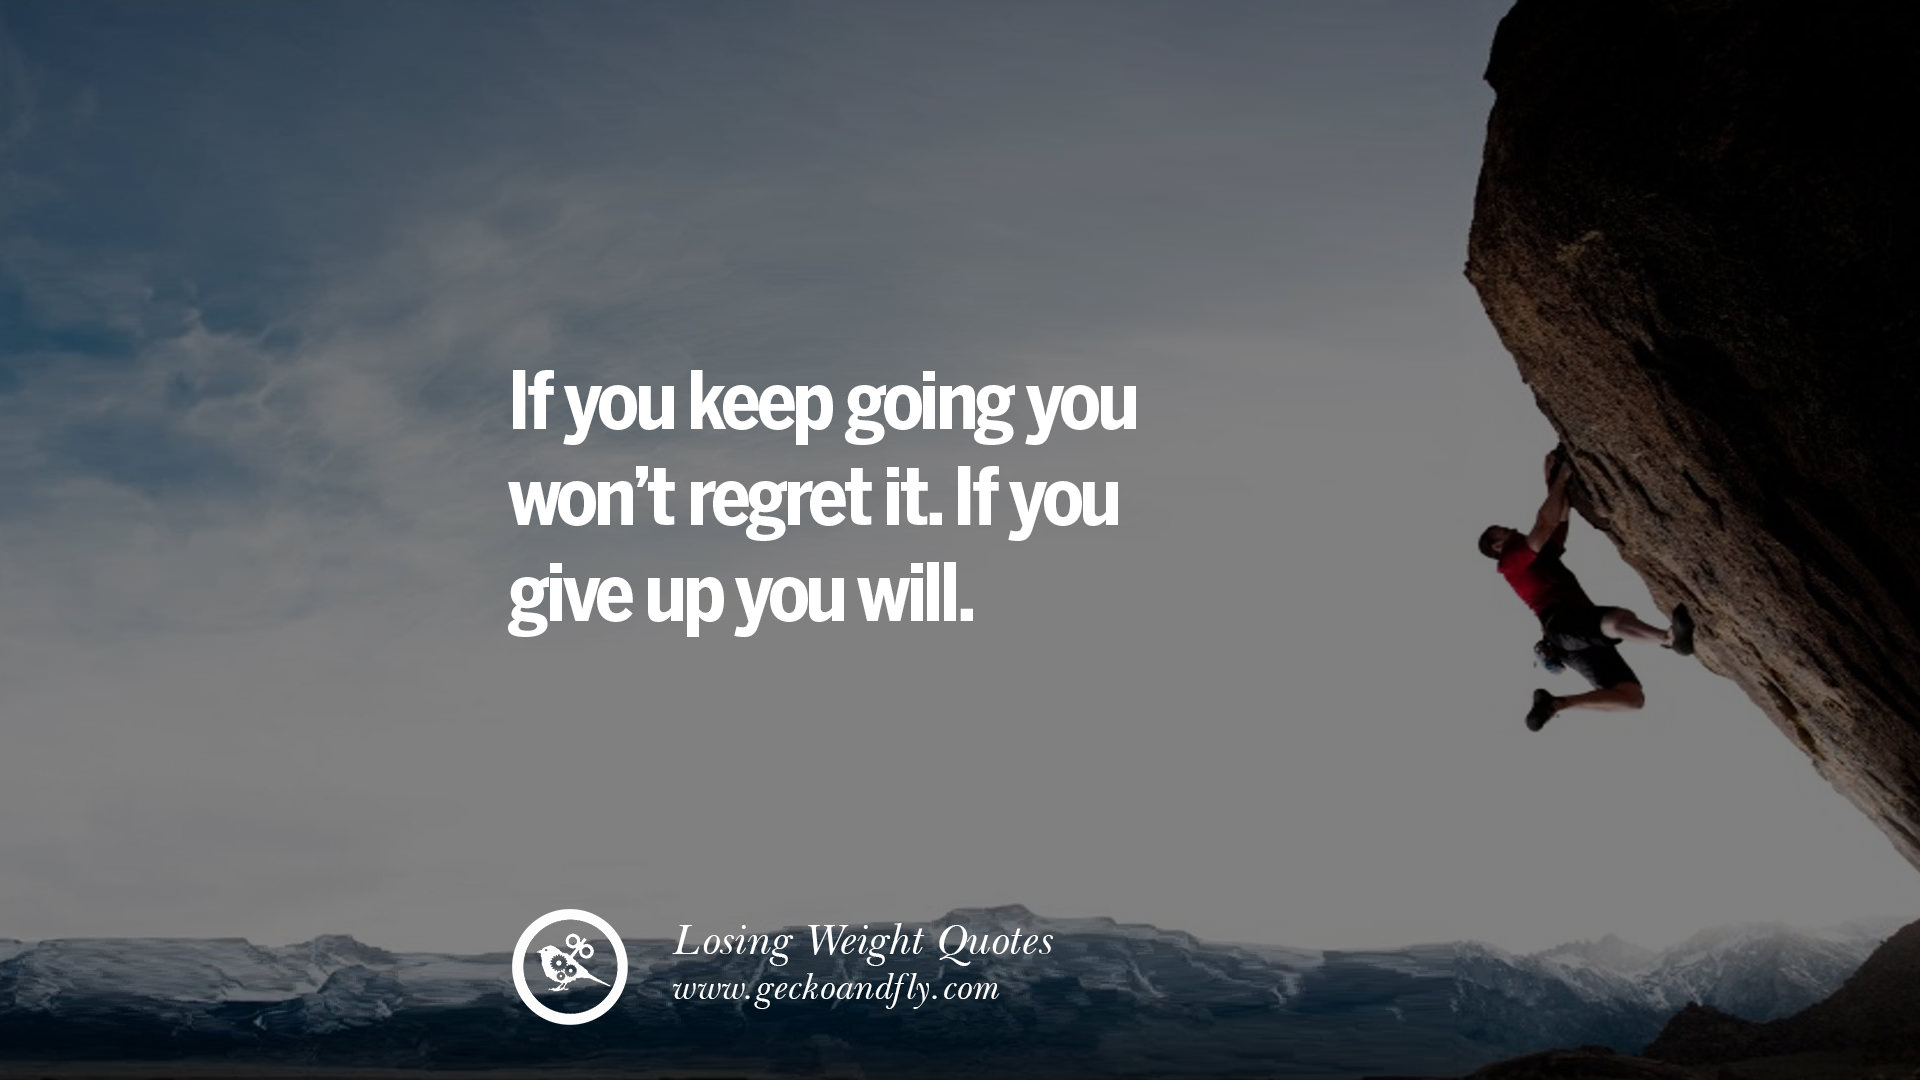 Gym Motivation Quotes Wallpapers 40 Motivational Quotes On Losing Weight On Diet And Never